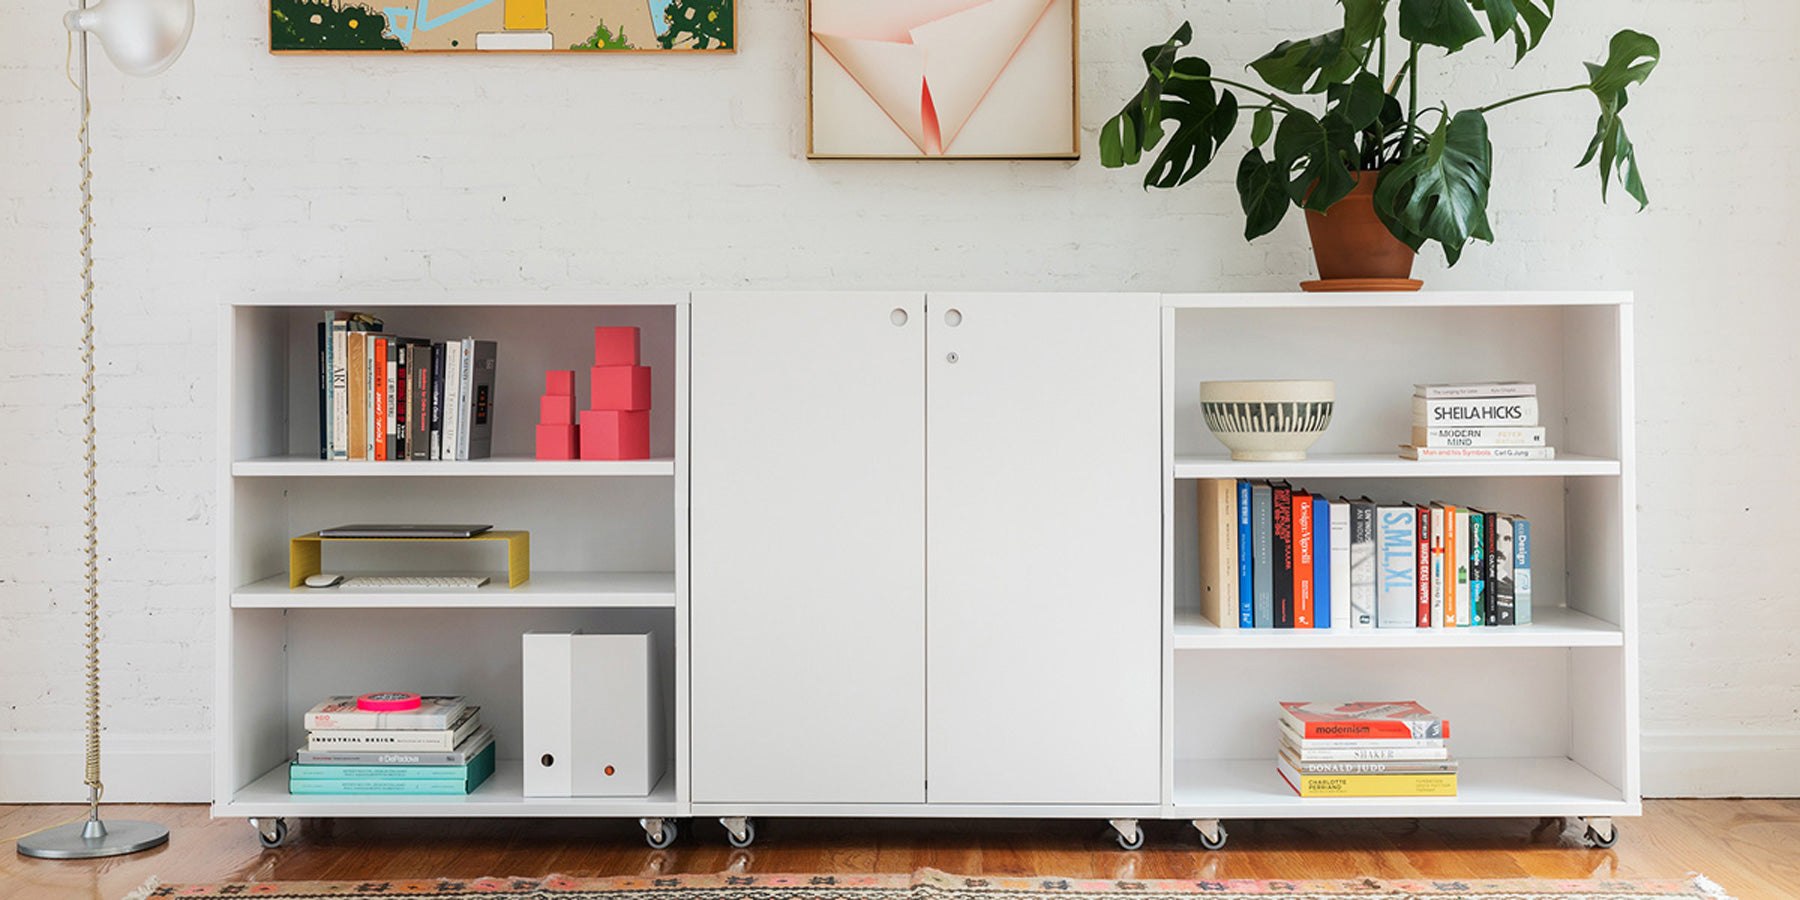 Heartwork Building Block storage cabinet in white in home setting between two bookcases